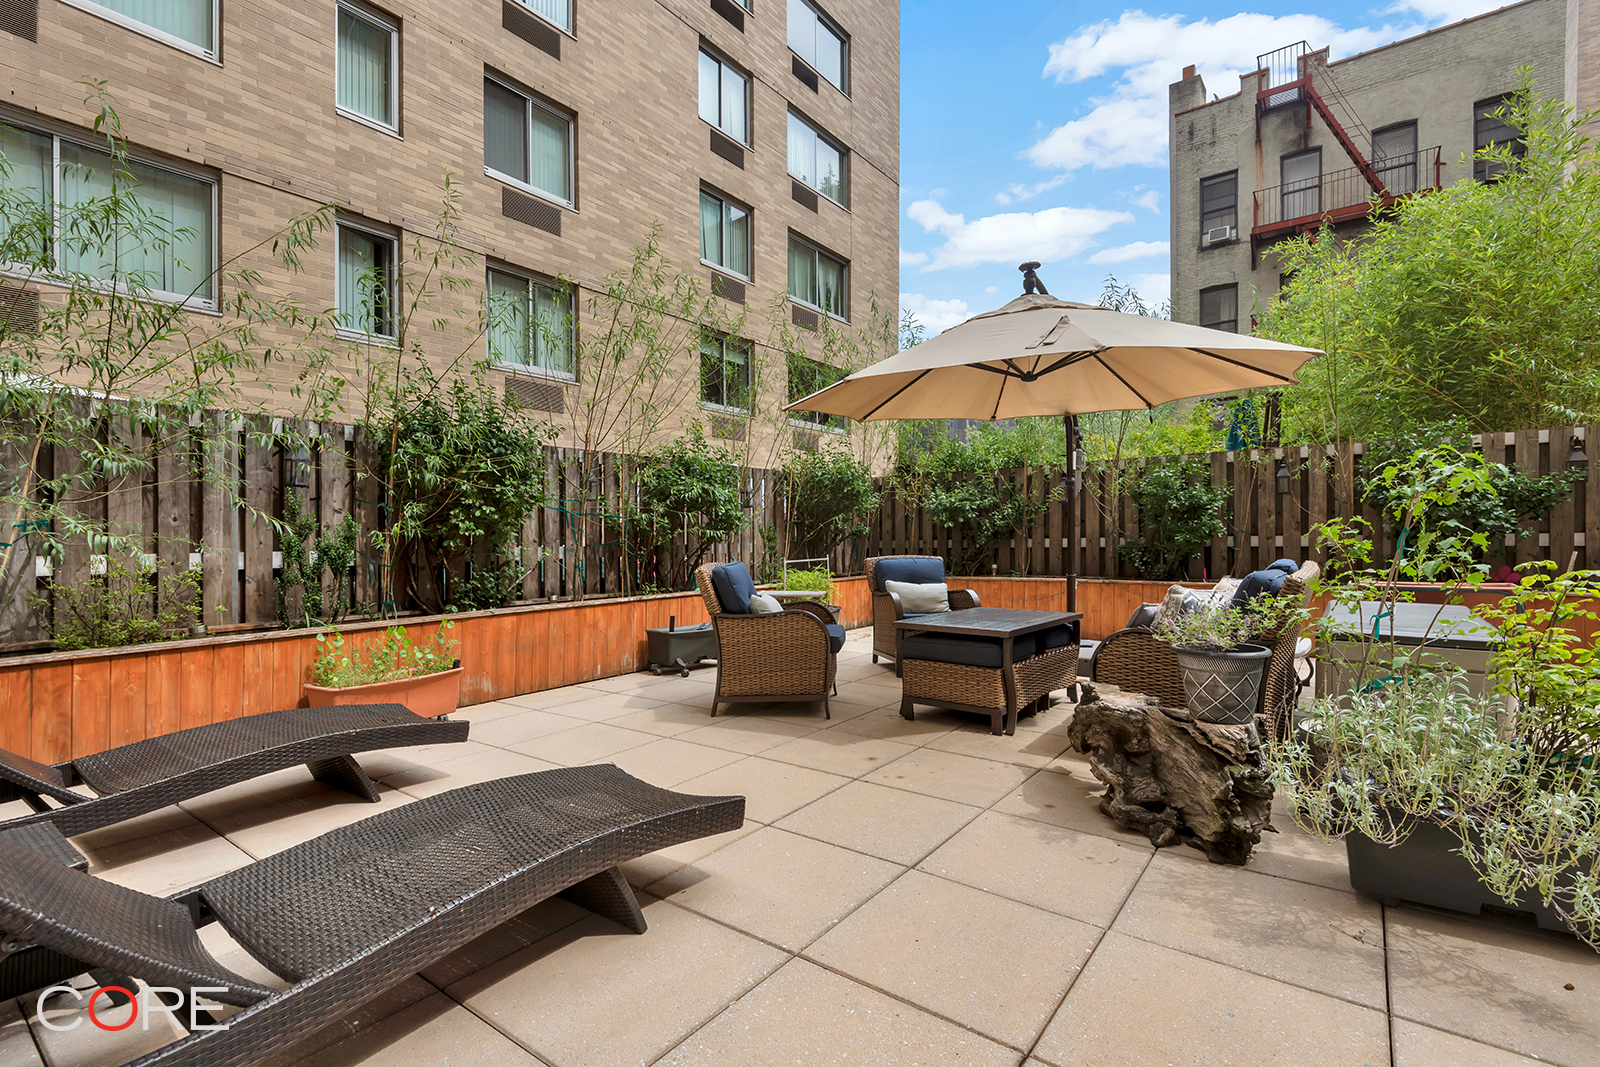 This beautifully renovated two-bedroom, two-bathroom condo has over 1,000 square feet of indoor and roughly 1,000 SF of outdoor space, which is like having a backyard while also living in a doorman building. The split-bedroom layout offers plenty of privacy between the two rooms, particularly with the 23-foot living/dining space in between. All windows look out onto the massive private terrace so you can control your view with your landscaping, decor and furnishings. You'll have a head start on that as the entire fence line of the terrace features a system of custom-made planting containers with drought-resistant plants. There is plenty of space for a seating area, dining area, games, storage, and more.  The sellers recently completed the following upgrades to the apartment:   In the kitchen: Solid maple hardwood cabinets, soft closing doors and drawers, under-cabinet lighting, toe-kick drawers, Caesarstone countertops, marble backsplash, Liebherr refrigerator, Bertazzoni stove and microwave, wine refrigerator, Insinkerator filtered hot and cold water dispenser as well as an additional pantry.    In the secondary bathroom: Marble countertop and flooring, hardwood vanity, deep soaking tub, rain shower head.  General: Maple engineered wood floors, solid hardwood doors, Hunter Douglas shades, built-in electric fireplace, custom lighting.  The Langston is a full-service condominium with a 24-hour attended lobby, live-in super, courtyard, building laundry, resident's gym, and on-site parking garage (extra fee). It is located two stops from Midtown on the A or D trains. Other nearby trains include the C, B 1, and 3 and the 4 and 5 trains are a quick ride on the Bx19 bus to Grand Concourse. The building is not far at all from Yankee Stadium, The Apollo Theatre, Riverbank State Park, NY Presbyterian Hospital, Dance Theatre of Harlem, Harlem School of the Arts, Schomburg Center, Harlem Y, NYSC, Bronx Terminal market Mall, Jackie Robinson Park (swimming, basketball, baseball)